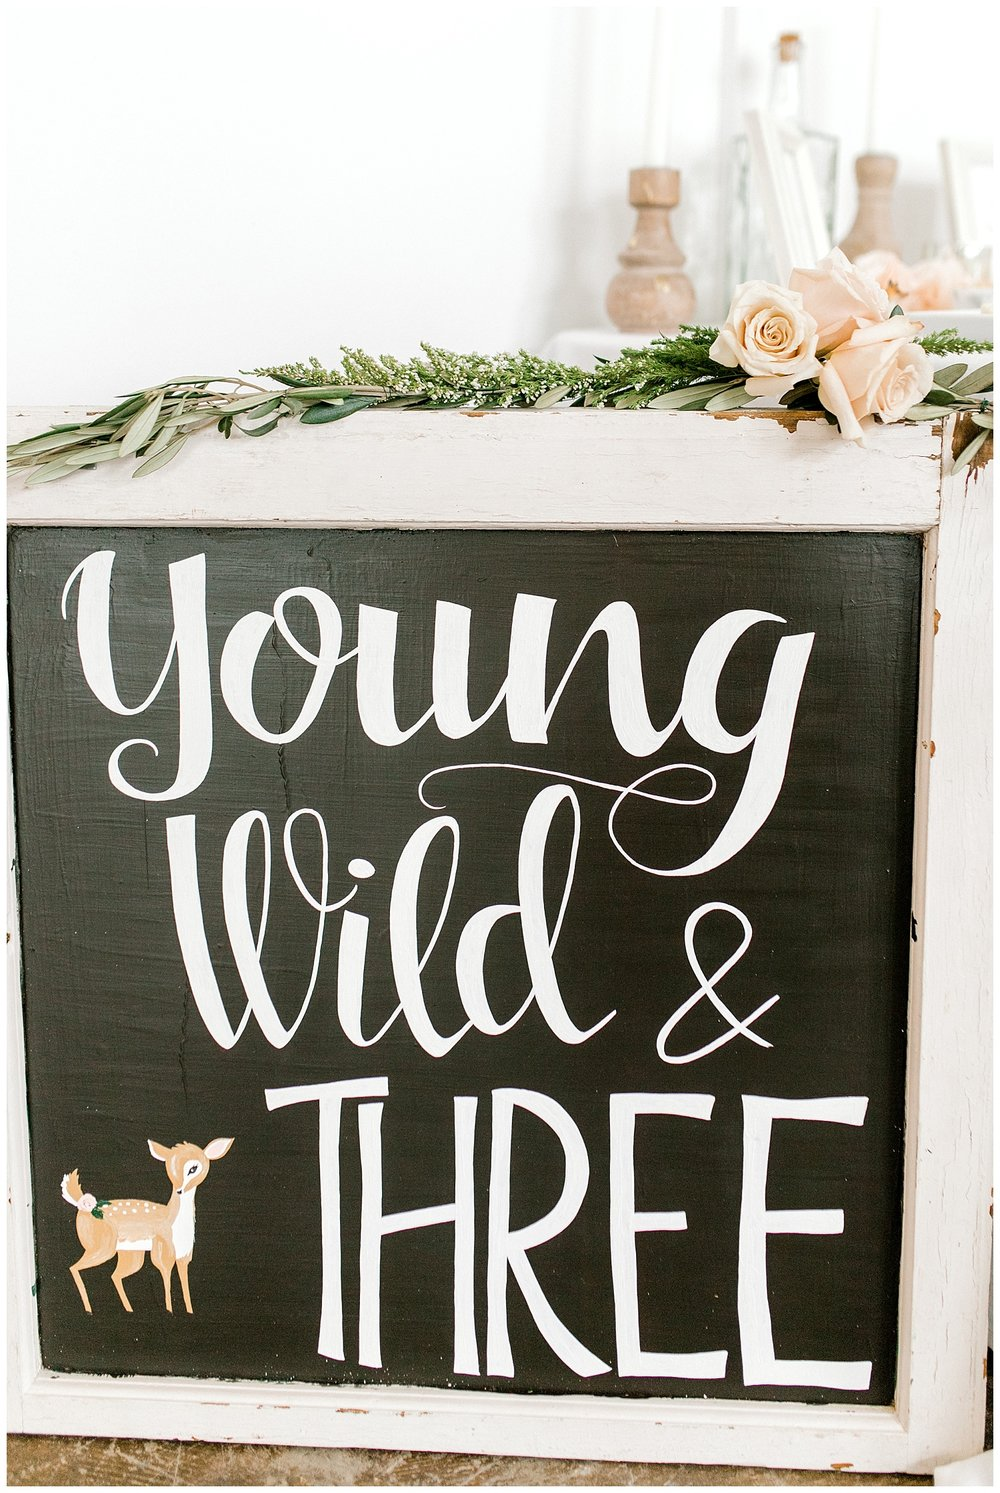 The Most Perfect Little Girl's Birthday Party Design | Animal Themed Toddler Birthday | Emma Rose Company | Blush and Grey Roses | Young Wild and Three Chalkboard sign